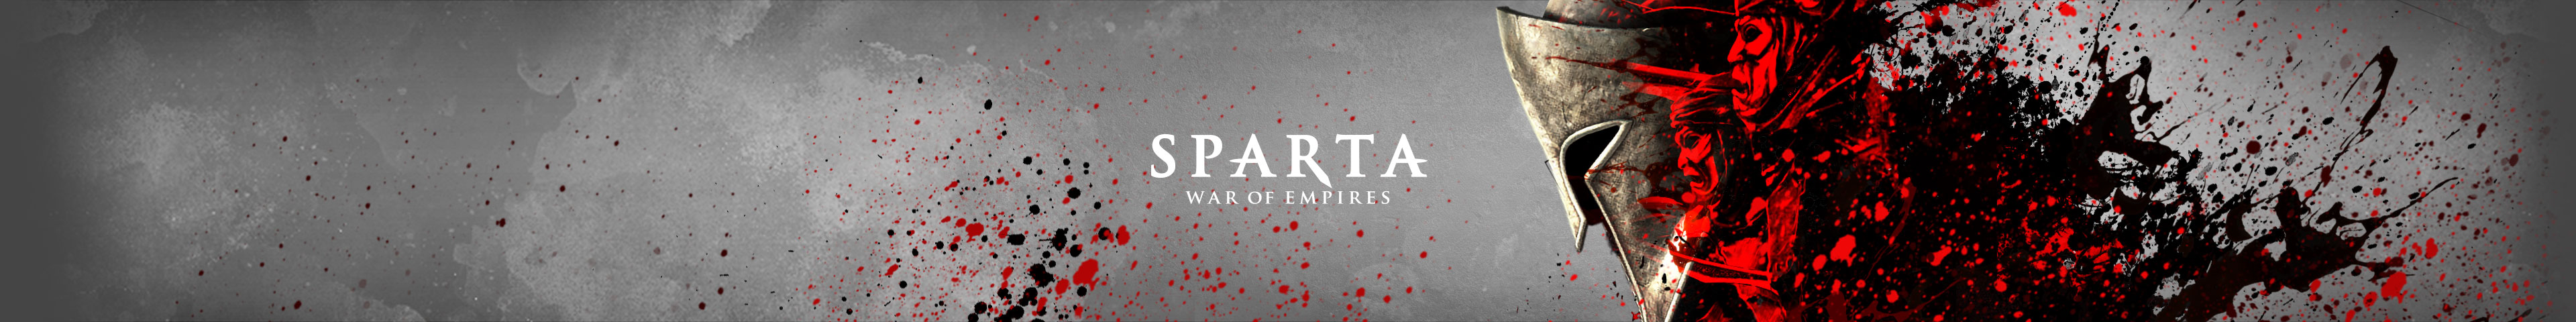 Sparta: War of Empires Forum